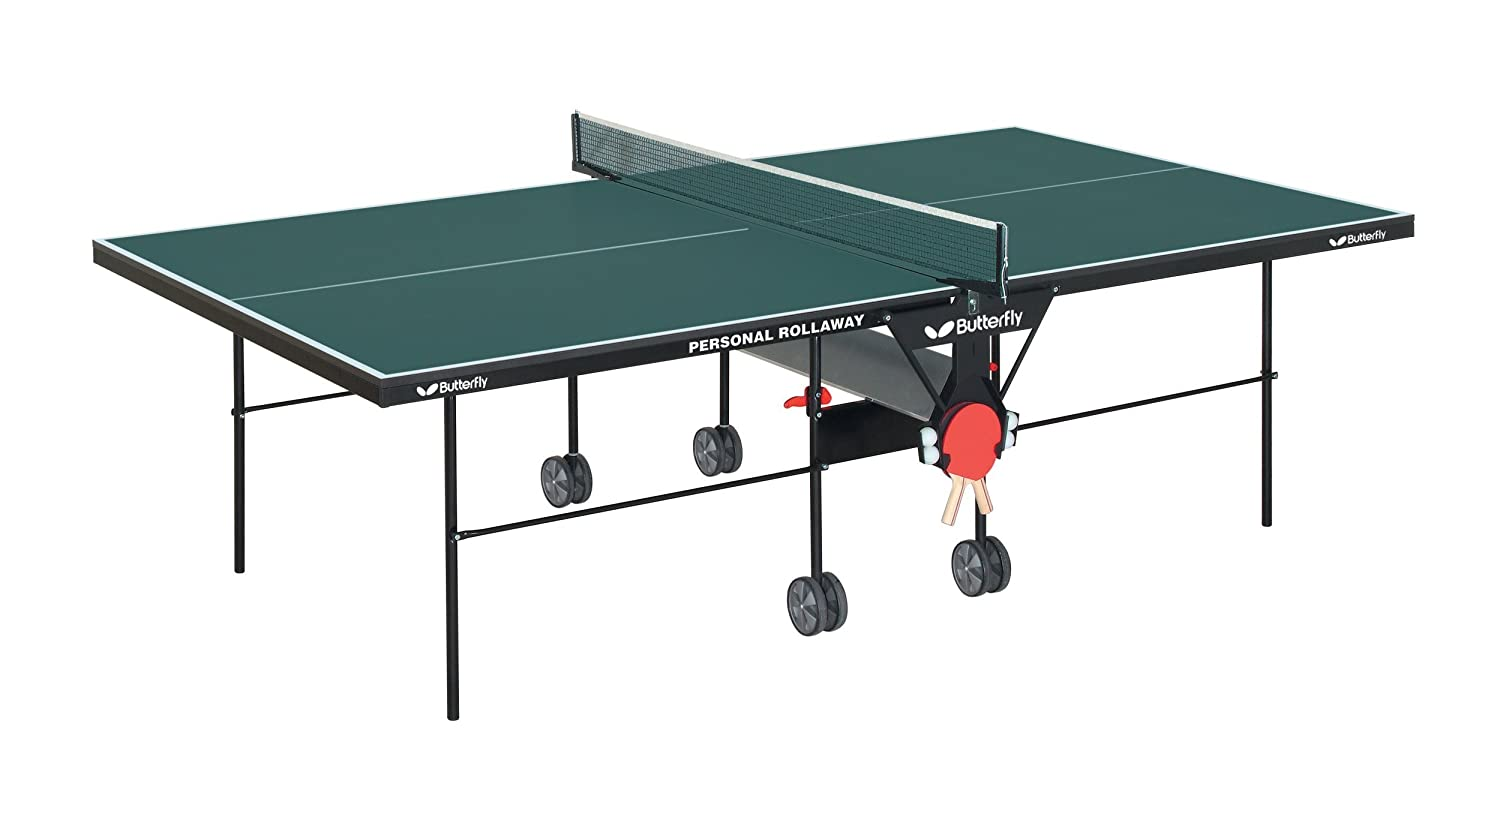 Butterfly Personal Rollaway Table Tennis Table Review